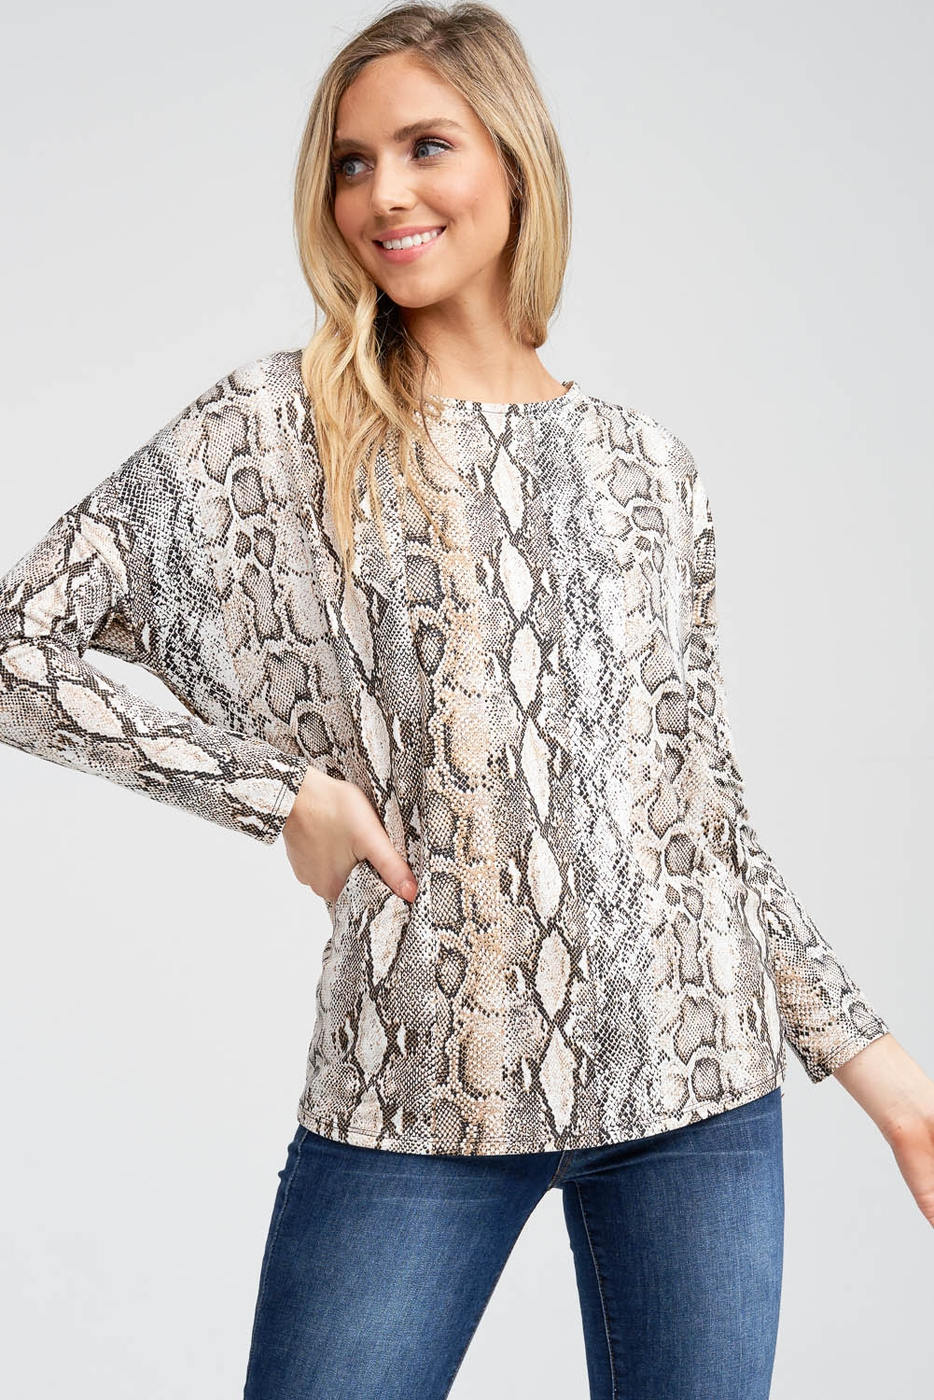 Open Back Twist Snake Print Top - orangeshine.com